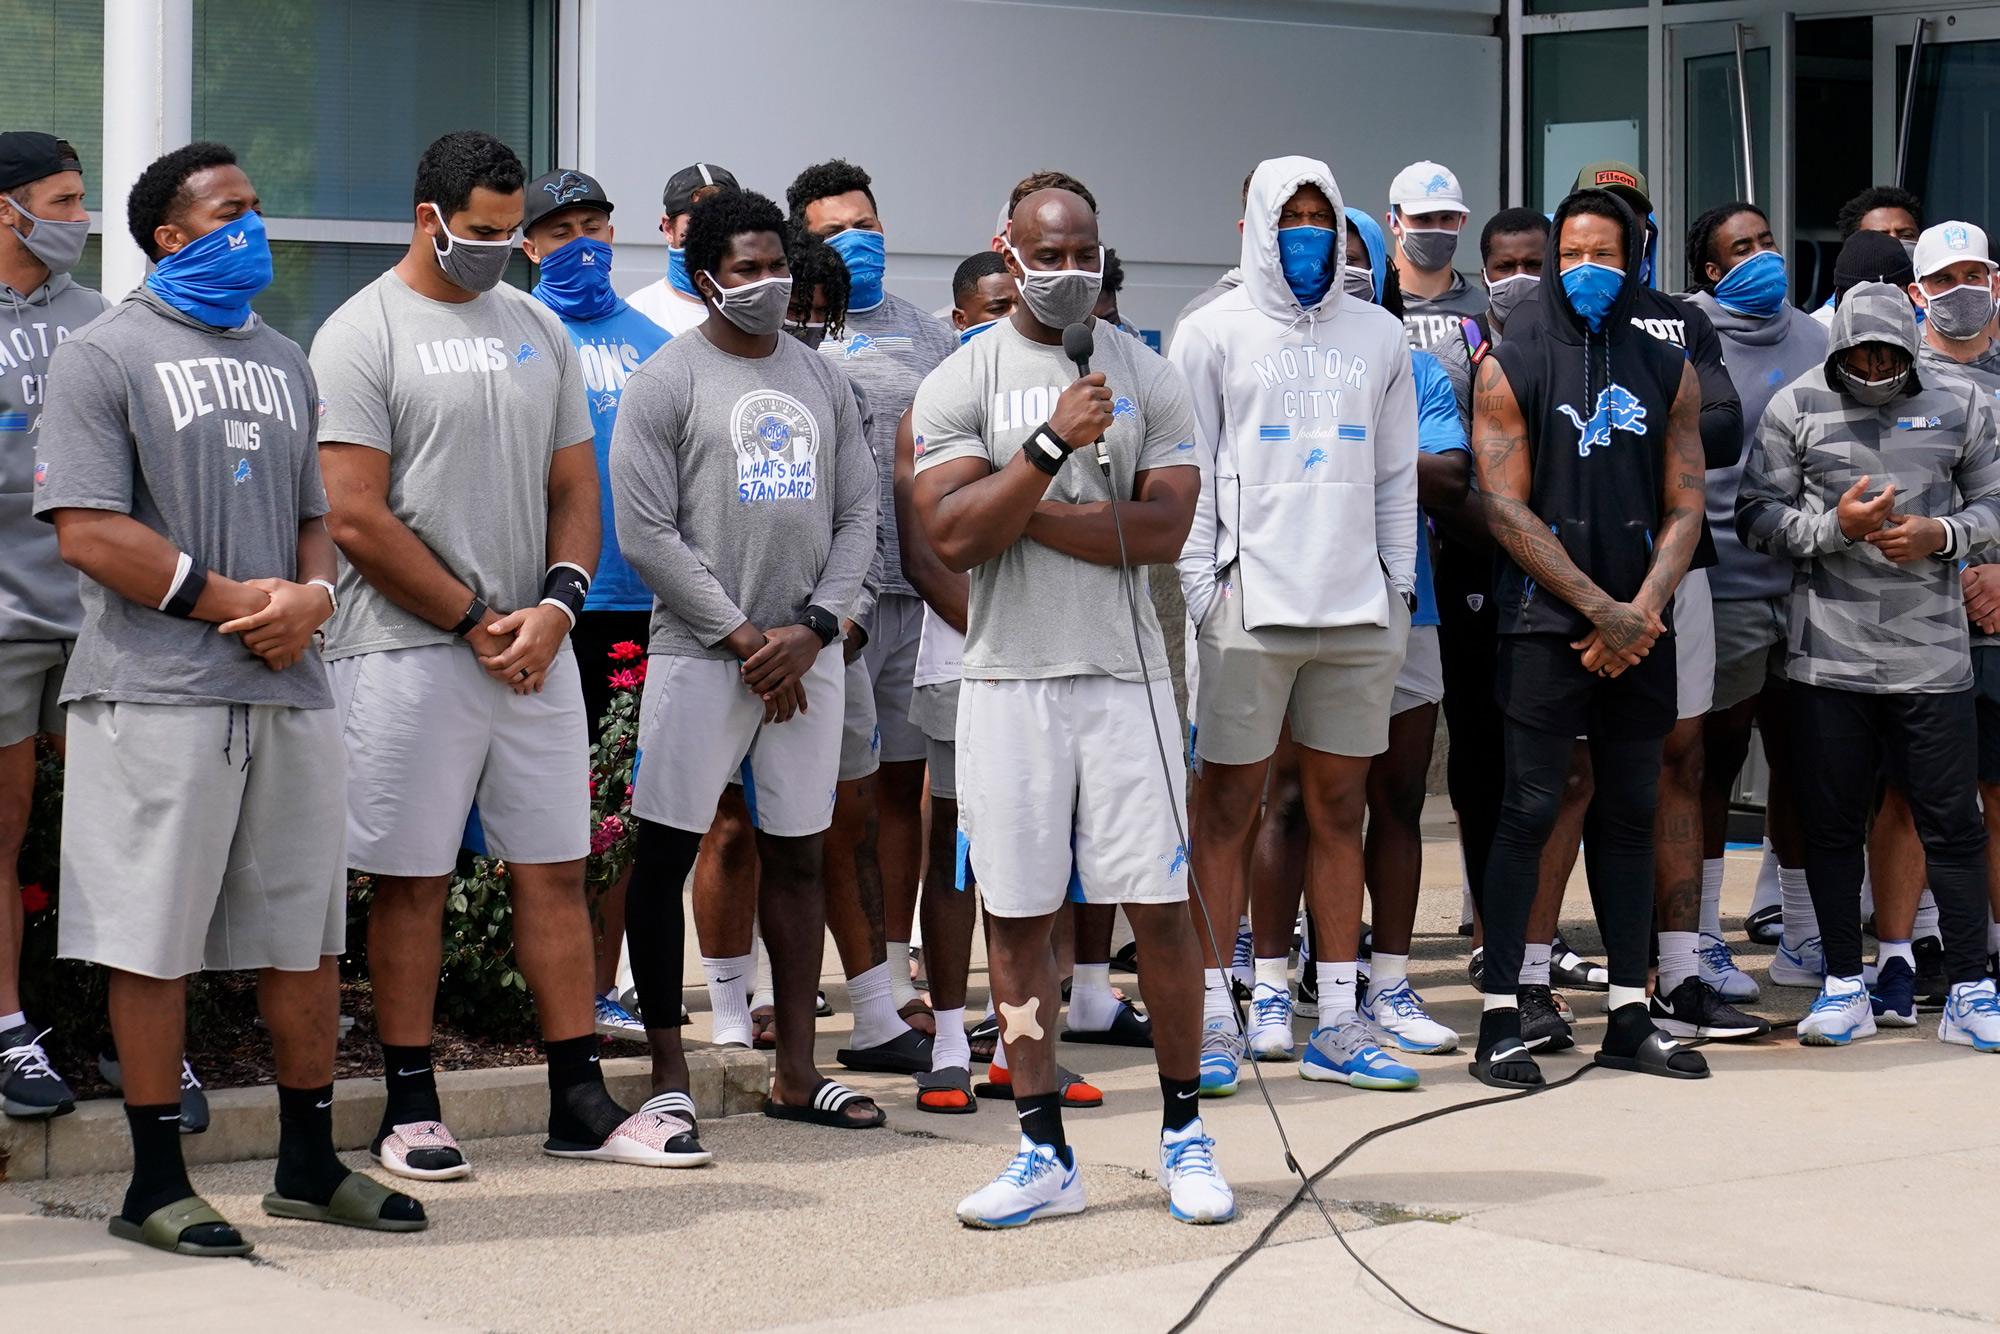 Detroit Lions safety Duron Harmon addresses the media with his teammates outside the Lions NFL football camp practice facility on August 25 in Allen Park, Michigan.